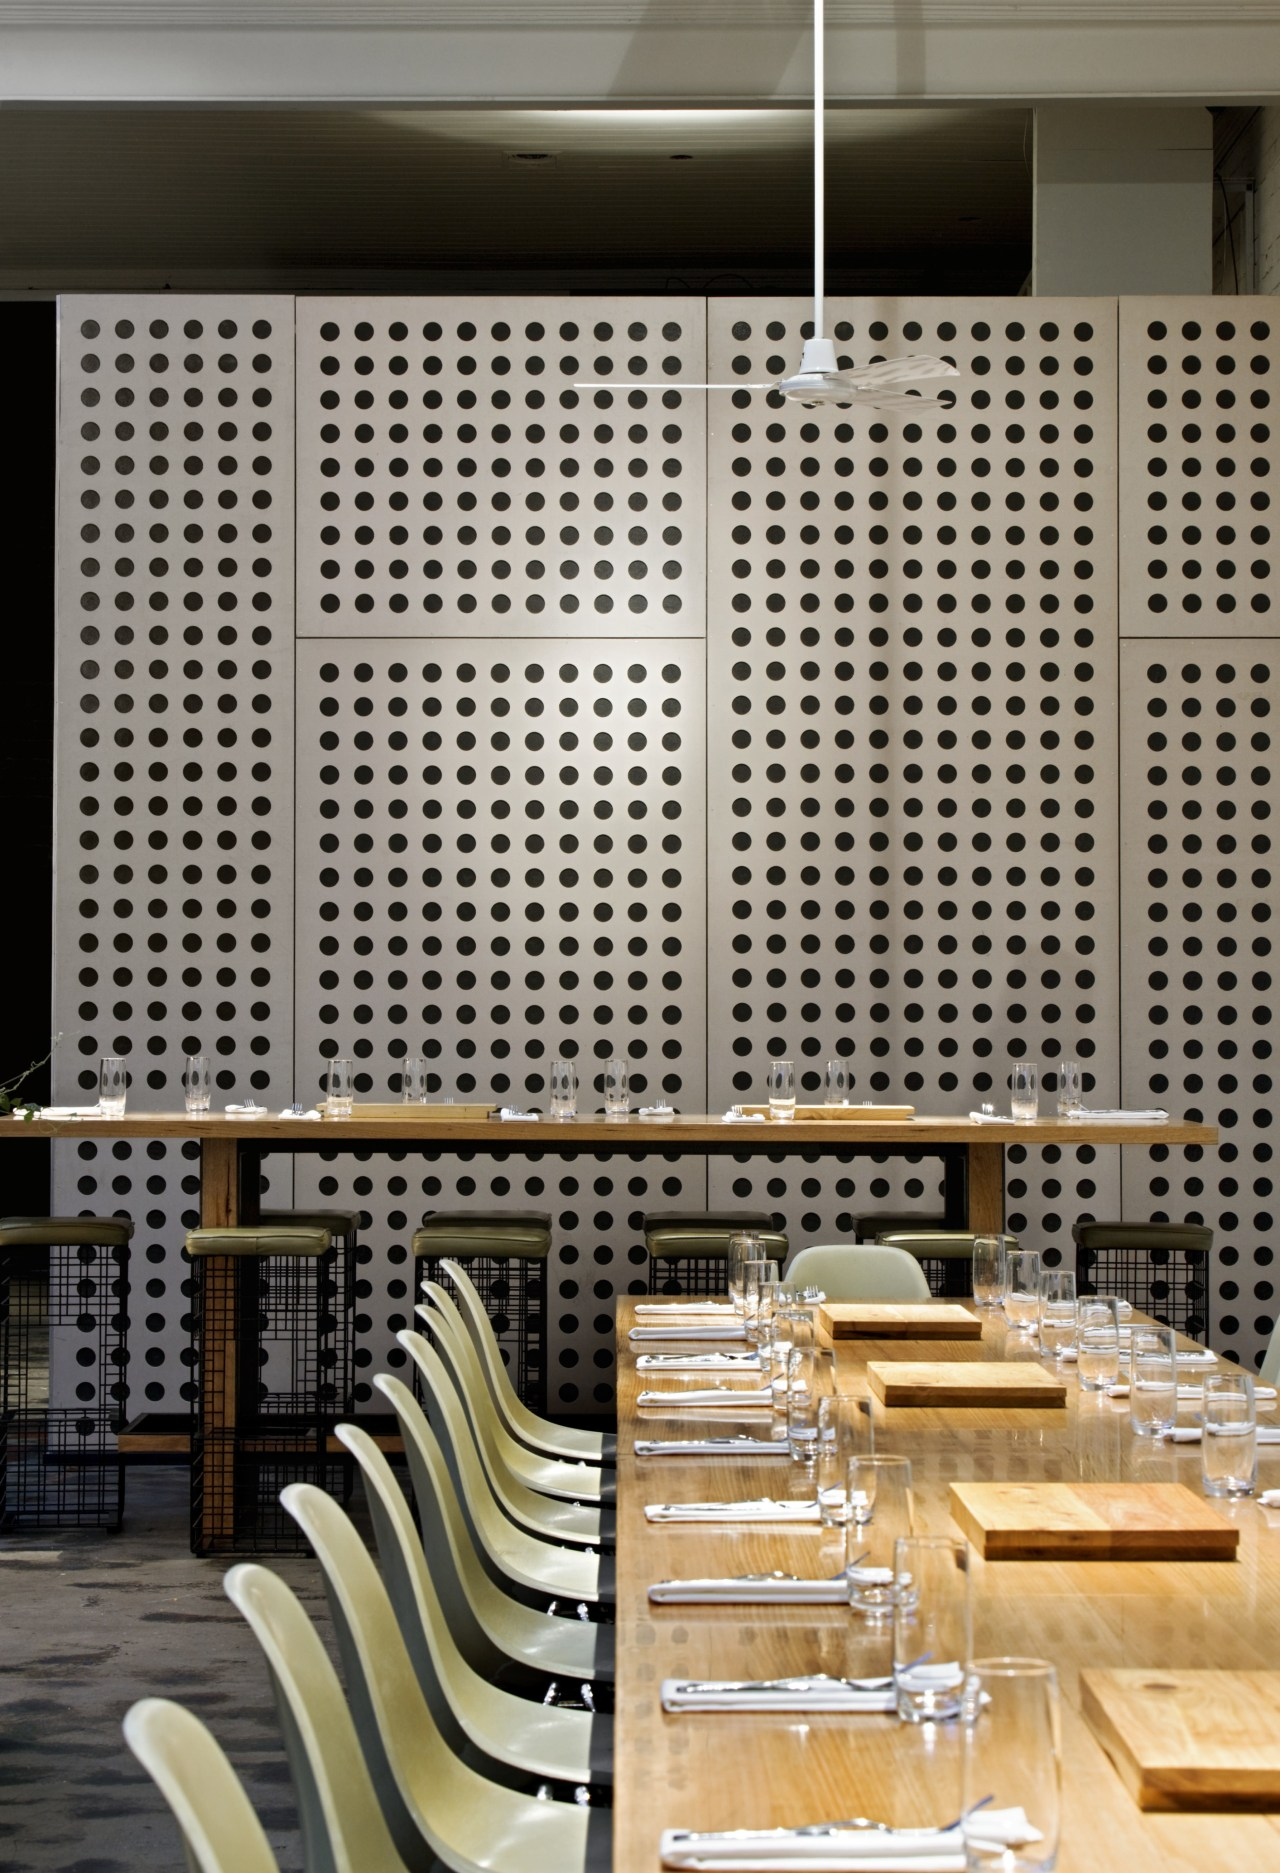 View of the cafe area at the St architecture, interior design, wall, gray, black